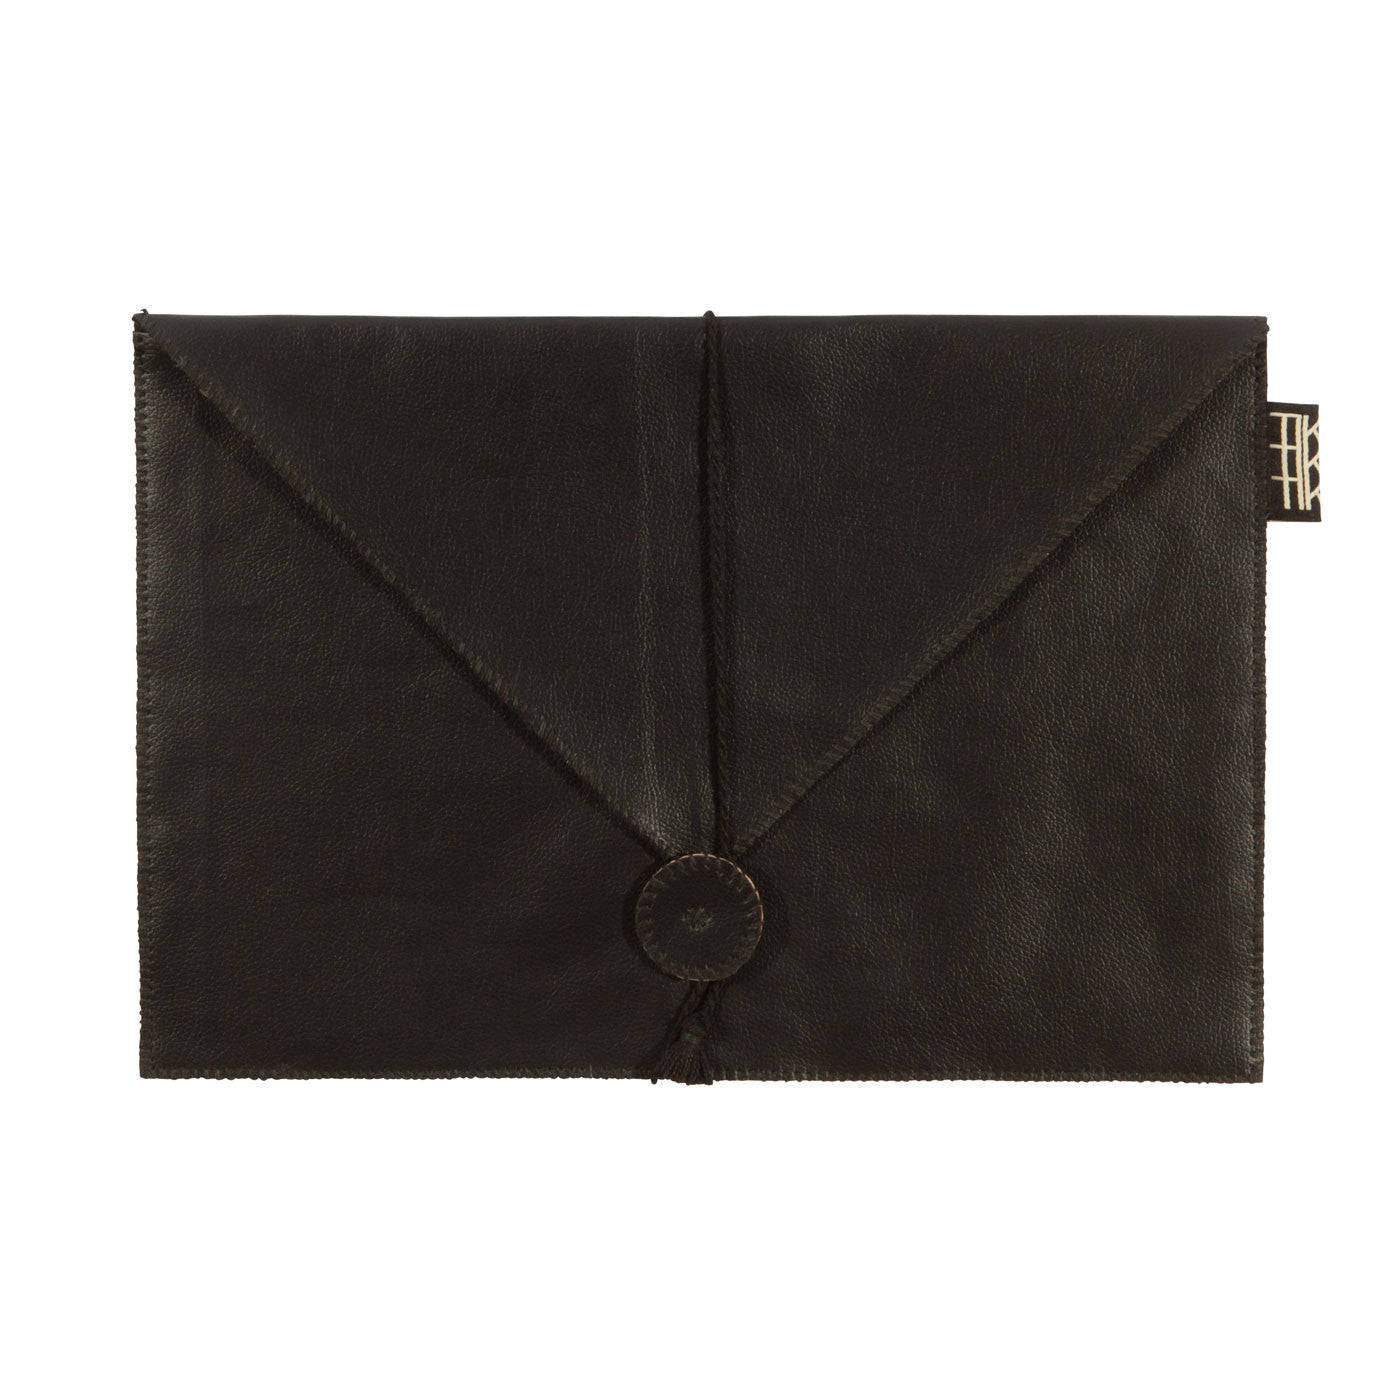 CLUTCH FOR LAPTOP by Tikau